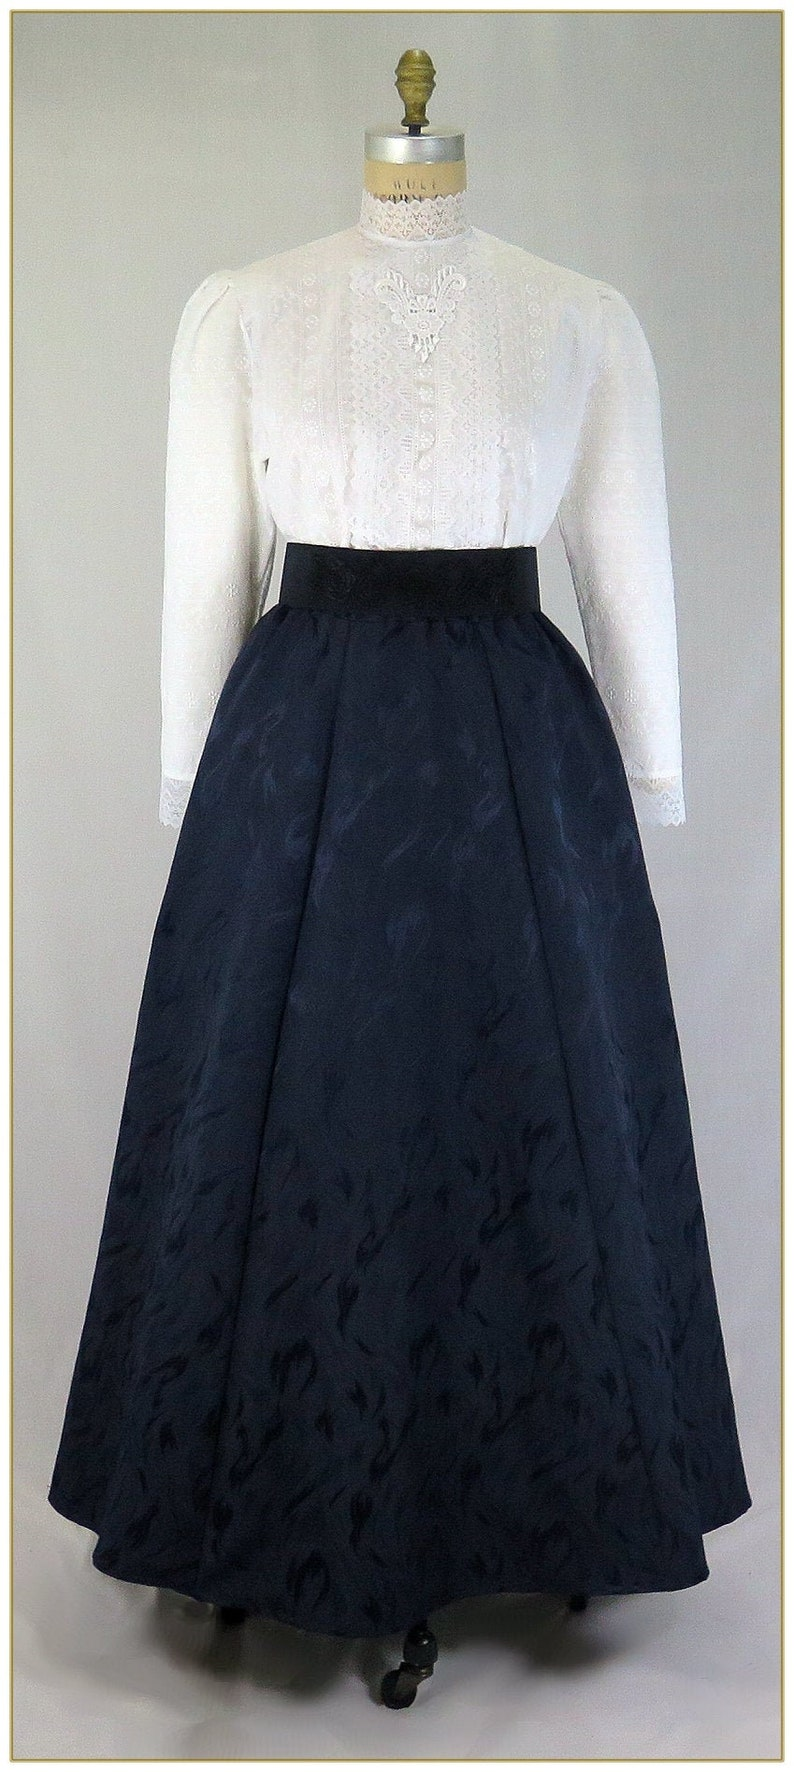 1900 -1910s Edwardian Fashion, Clothing & Costumes Victorian Midnight Navy Blue Jacquard Skirt $68.00 AT vintagedancer.com